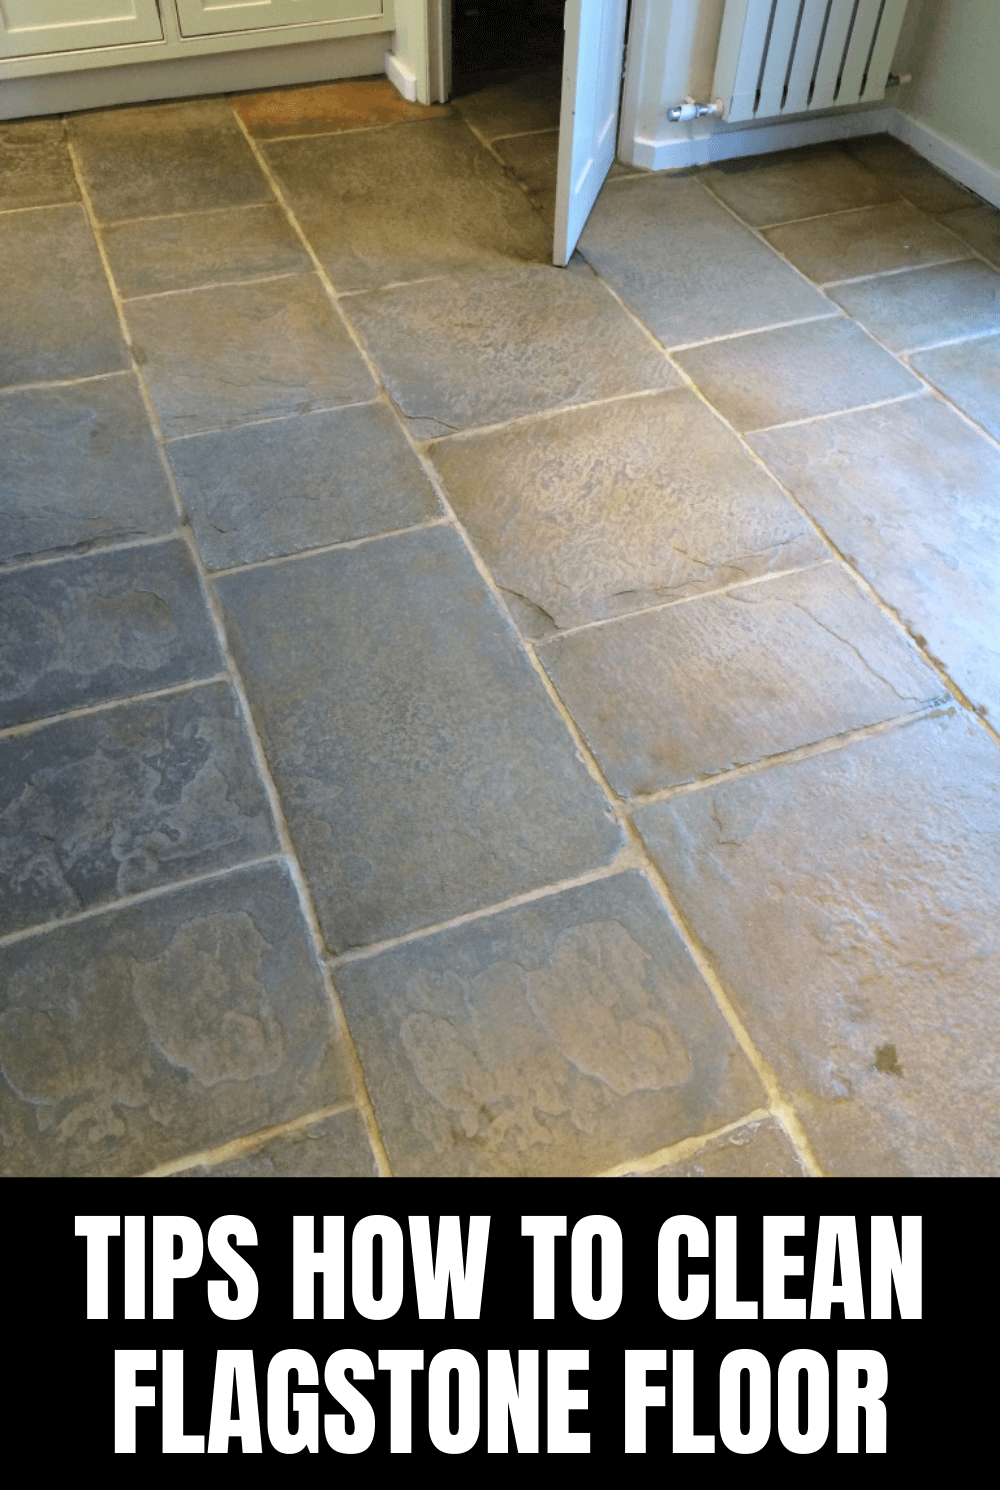 TIPS HOW TO CLEAN FLAGSTONE FLOOR